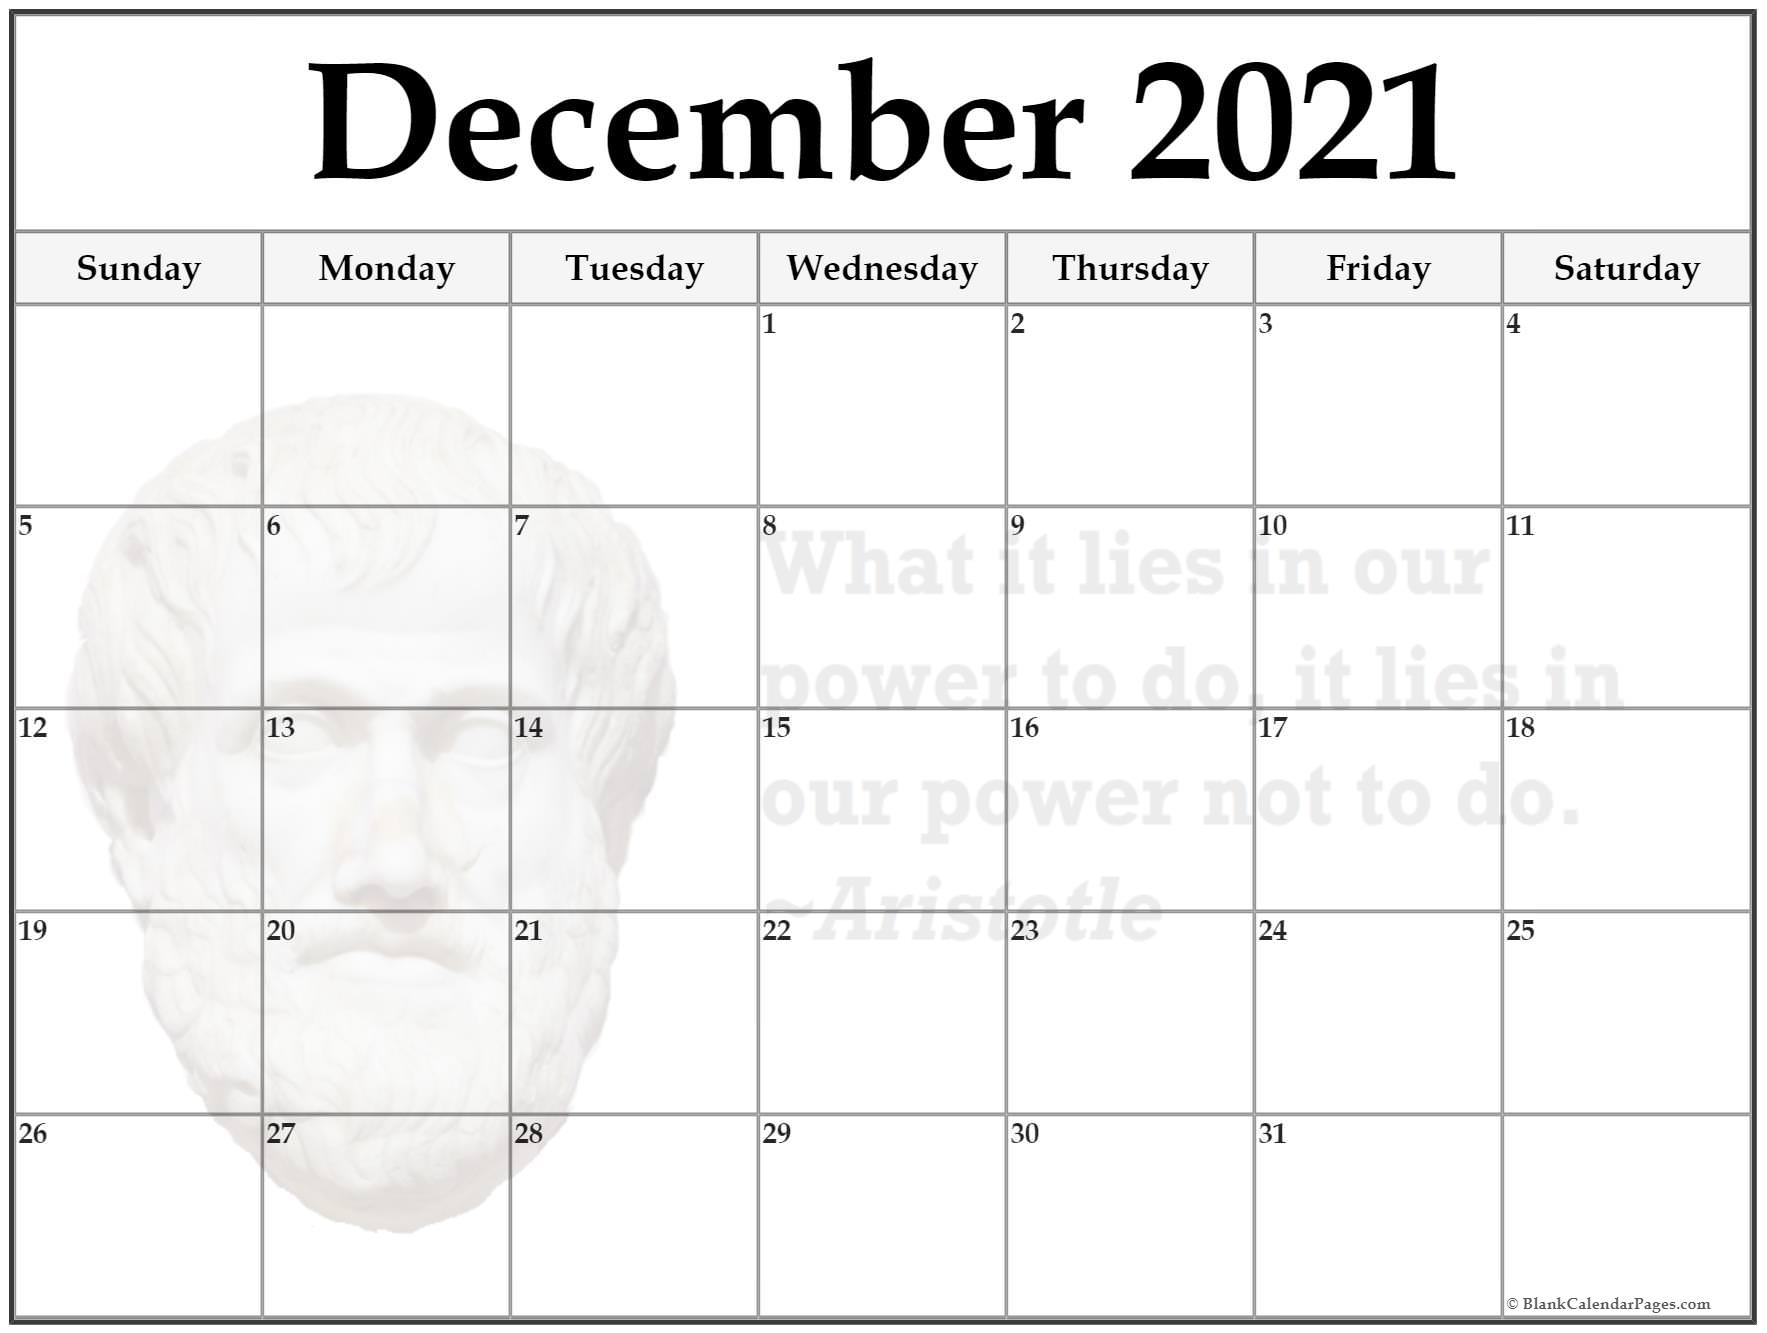 December calendar 2019What is lies in our power to do, it lies in our power not to do ~Aristotle